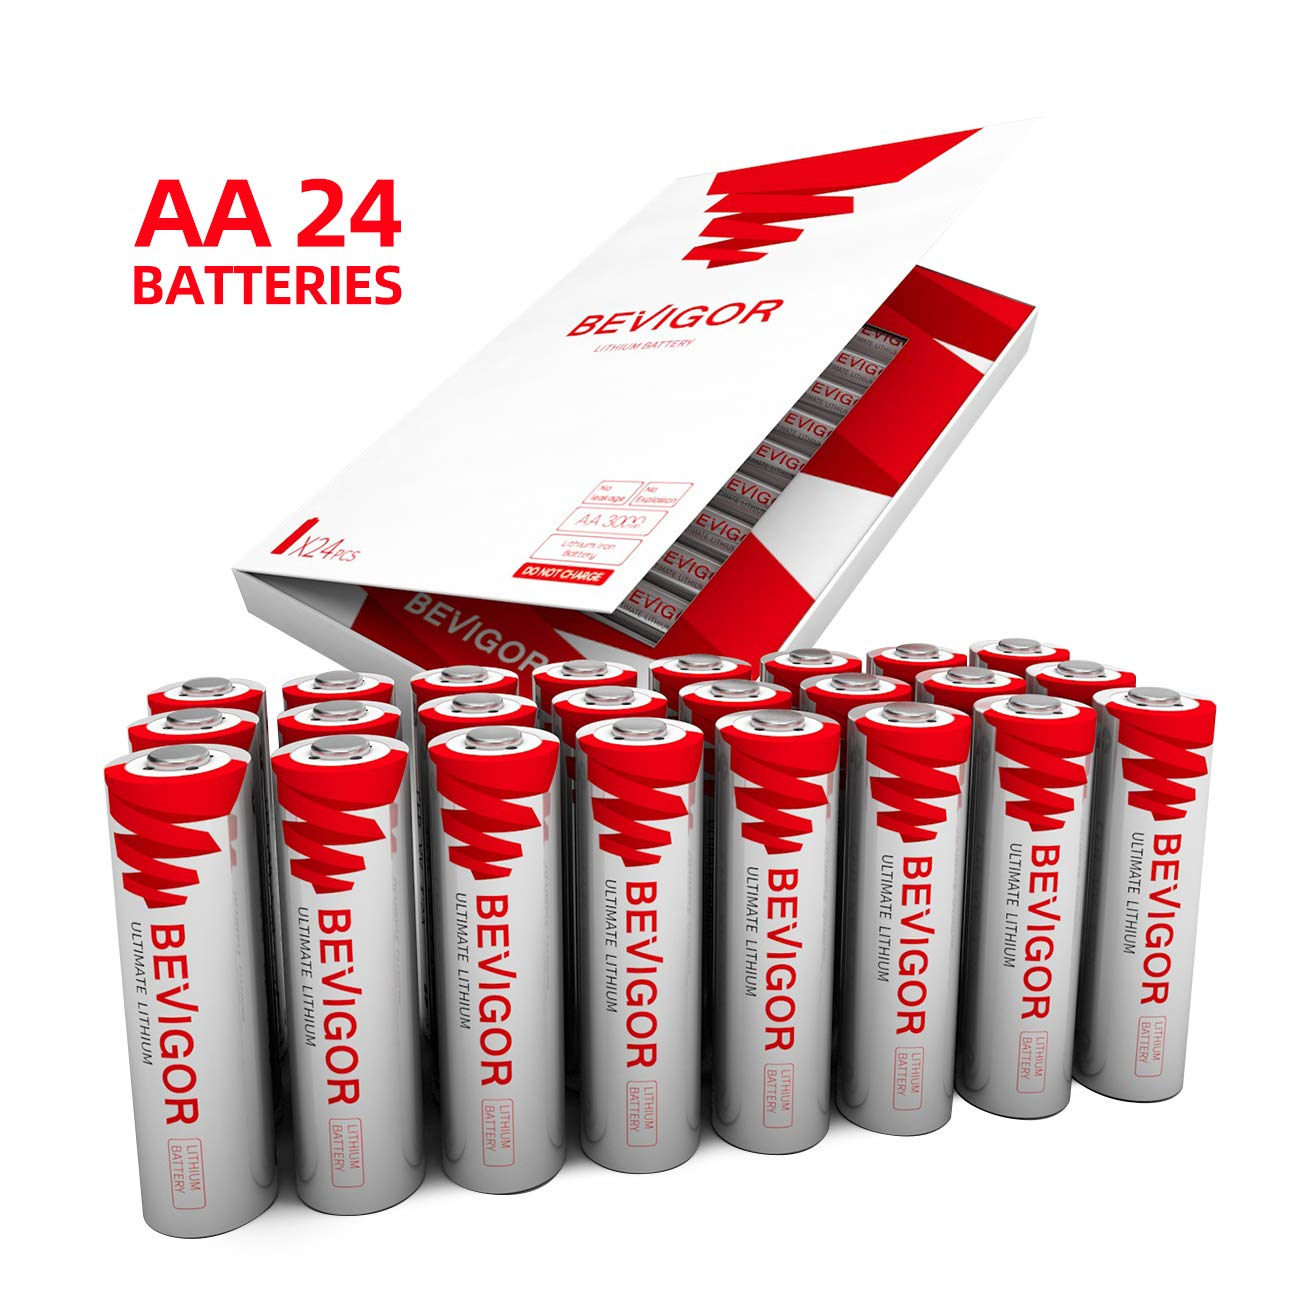 Bevigor AA Lithium Batteries, 24Pack Ultimate Lithium Double A Batteries, 1.5V 3000mAh Longer Lasting AA Batteries for Flashlight, Toys, Remote Control, Non-Rechargeable